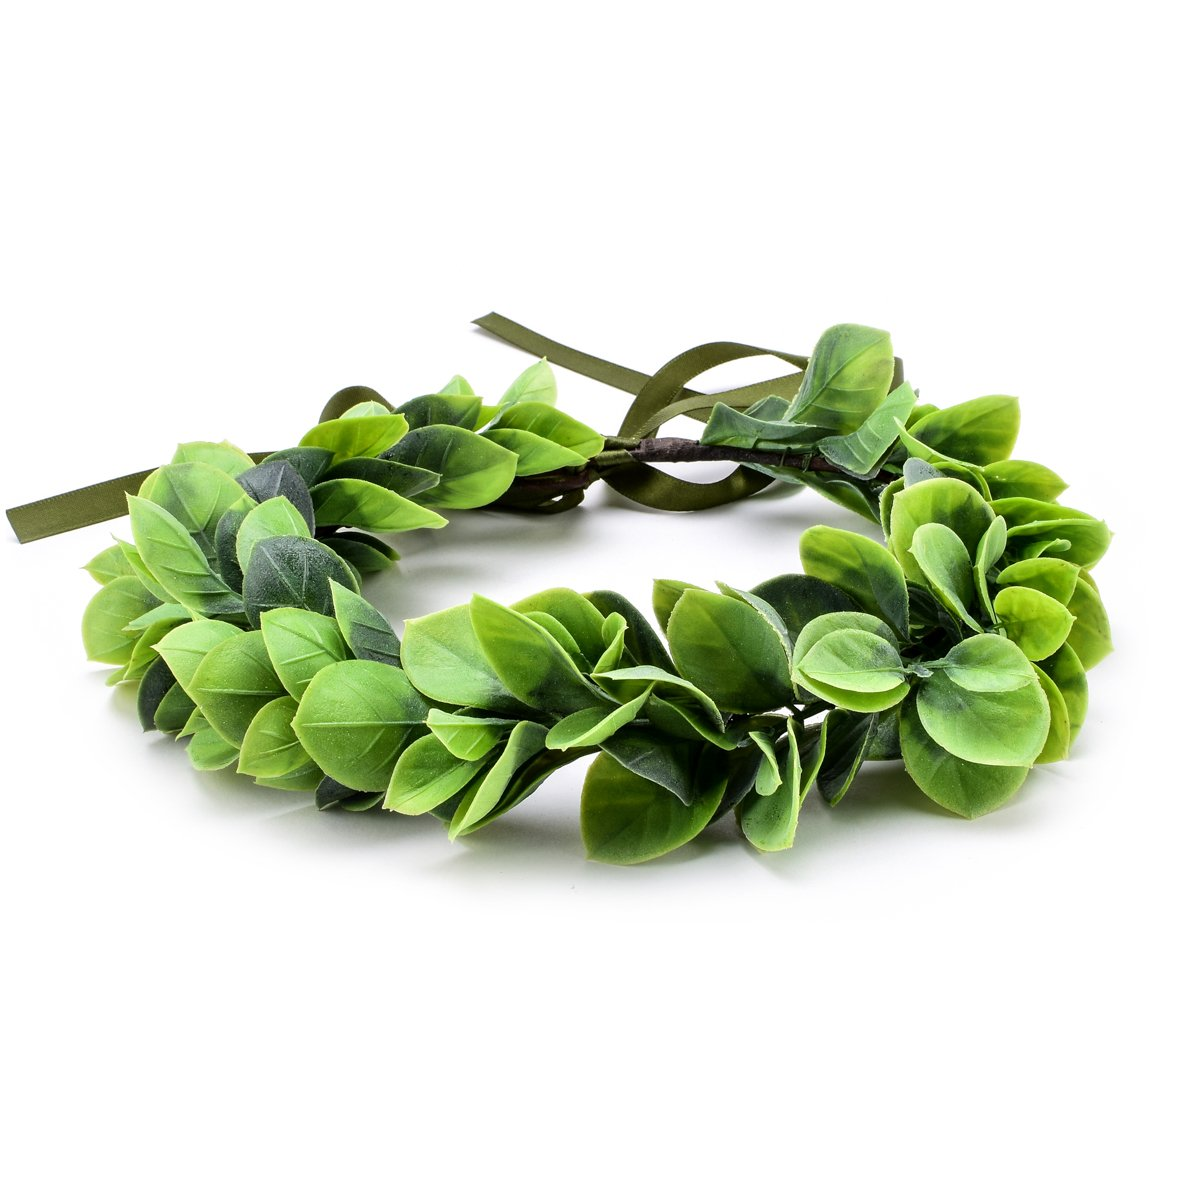 Floral Fall Christmas Flower Crown Vintage Nature Berries Festival Woodland Wedding Headband HD-02 (Green Leaf) by Floral Fall